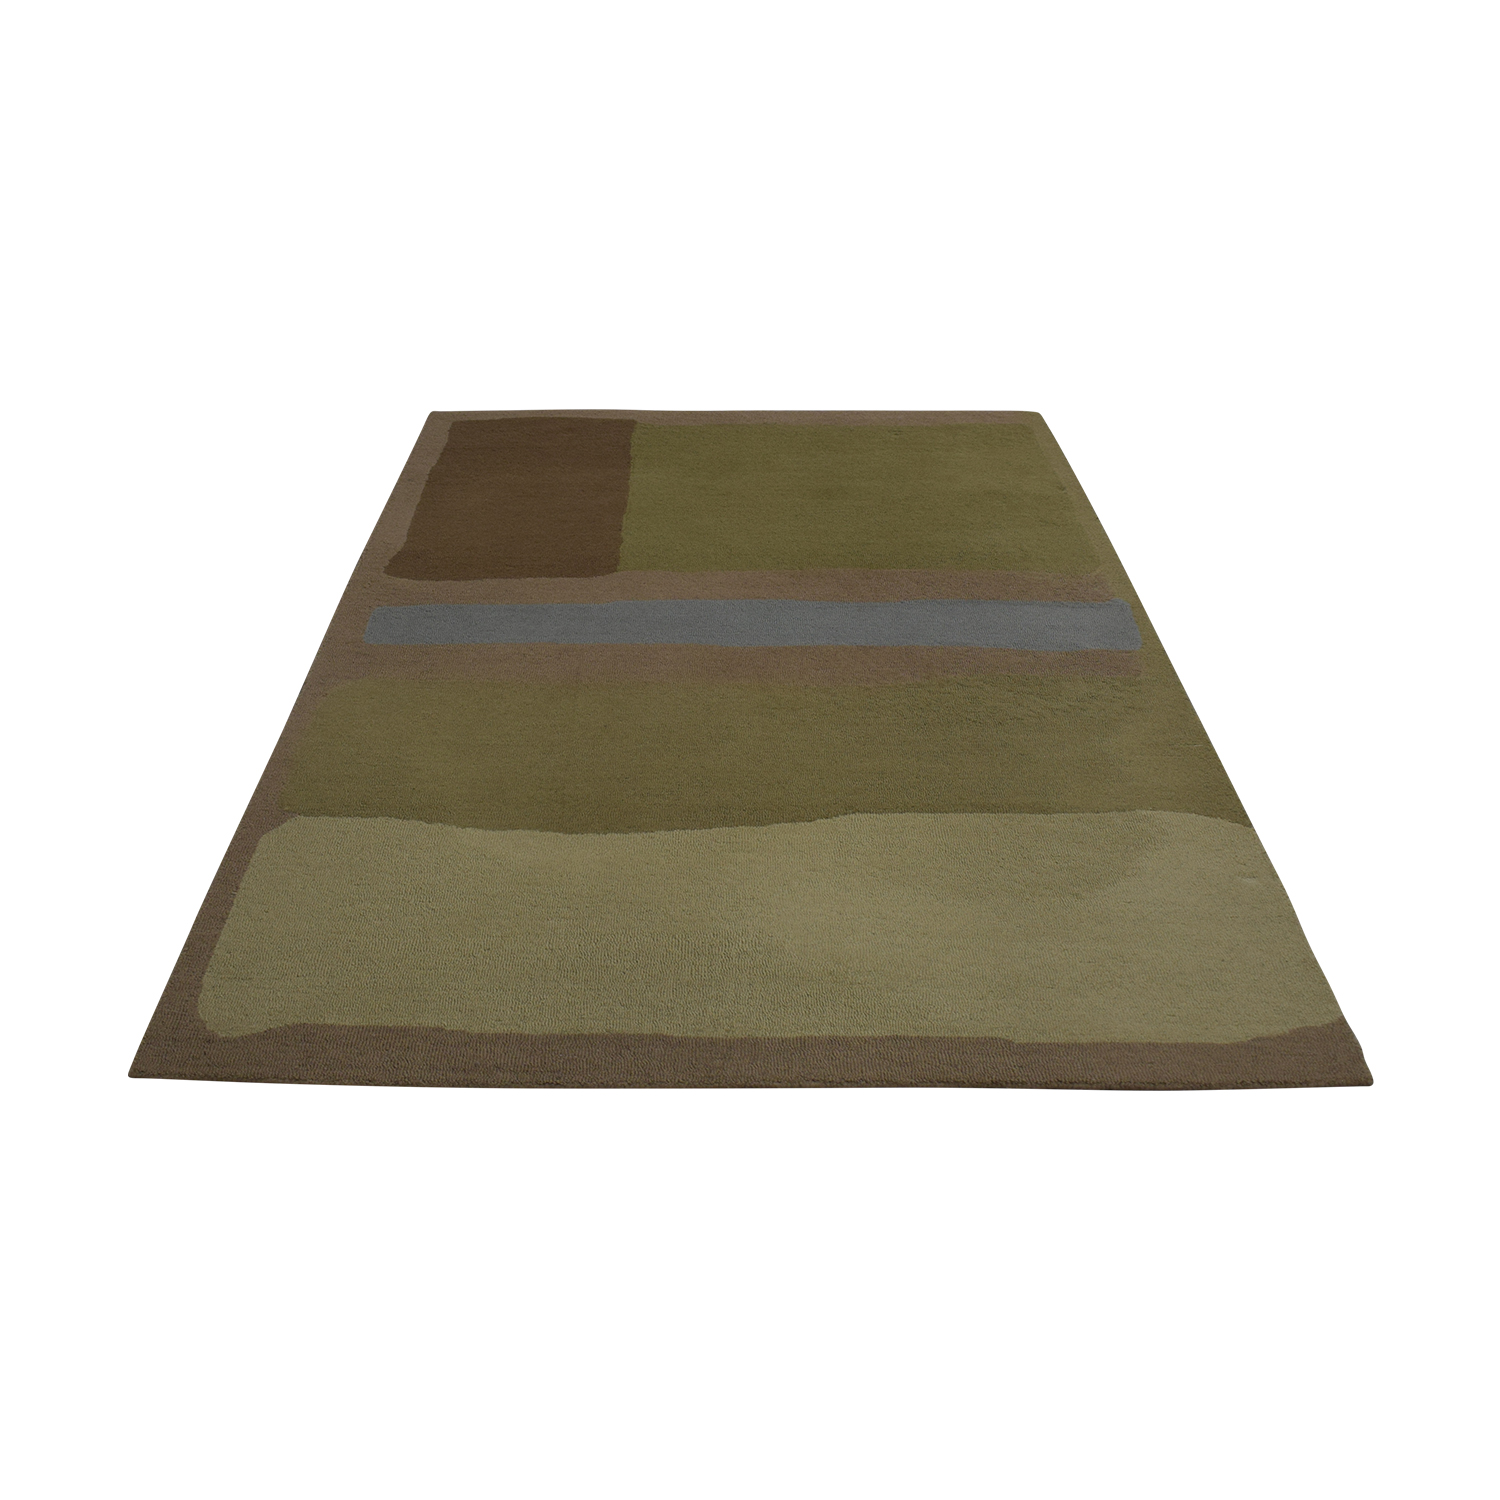 Room & Board Room & Board Multi-Colored Abstract Rug second hand